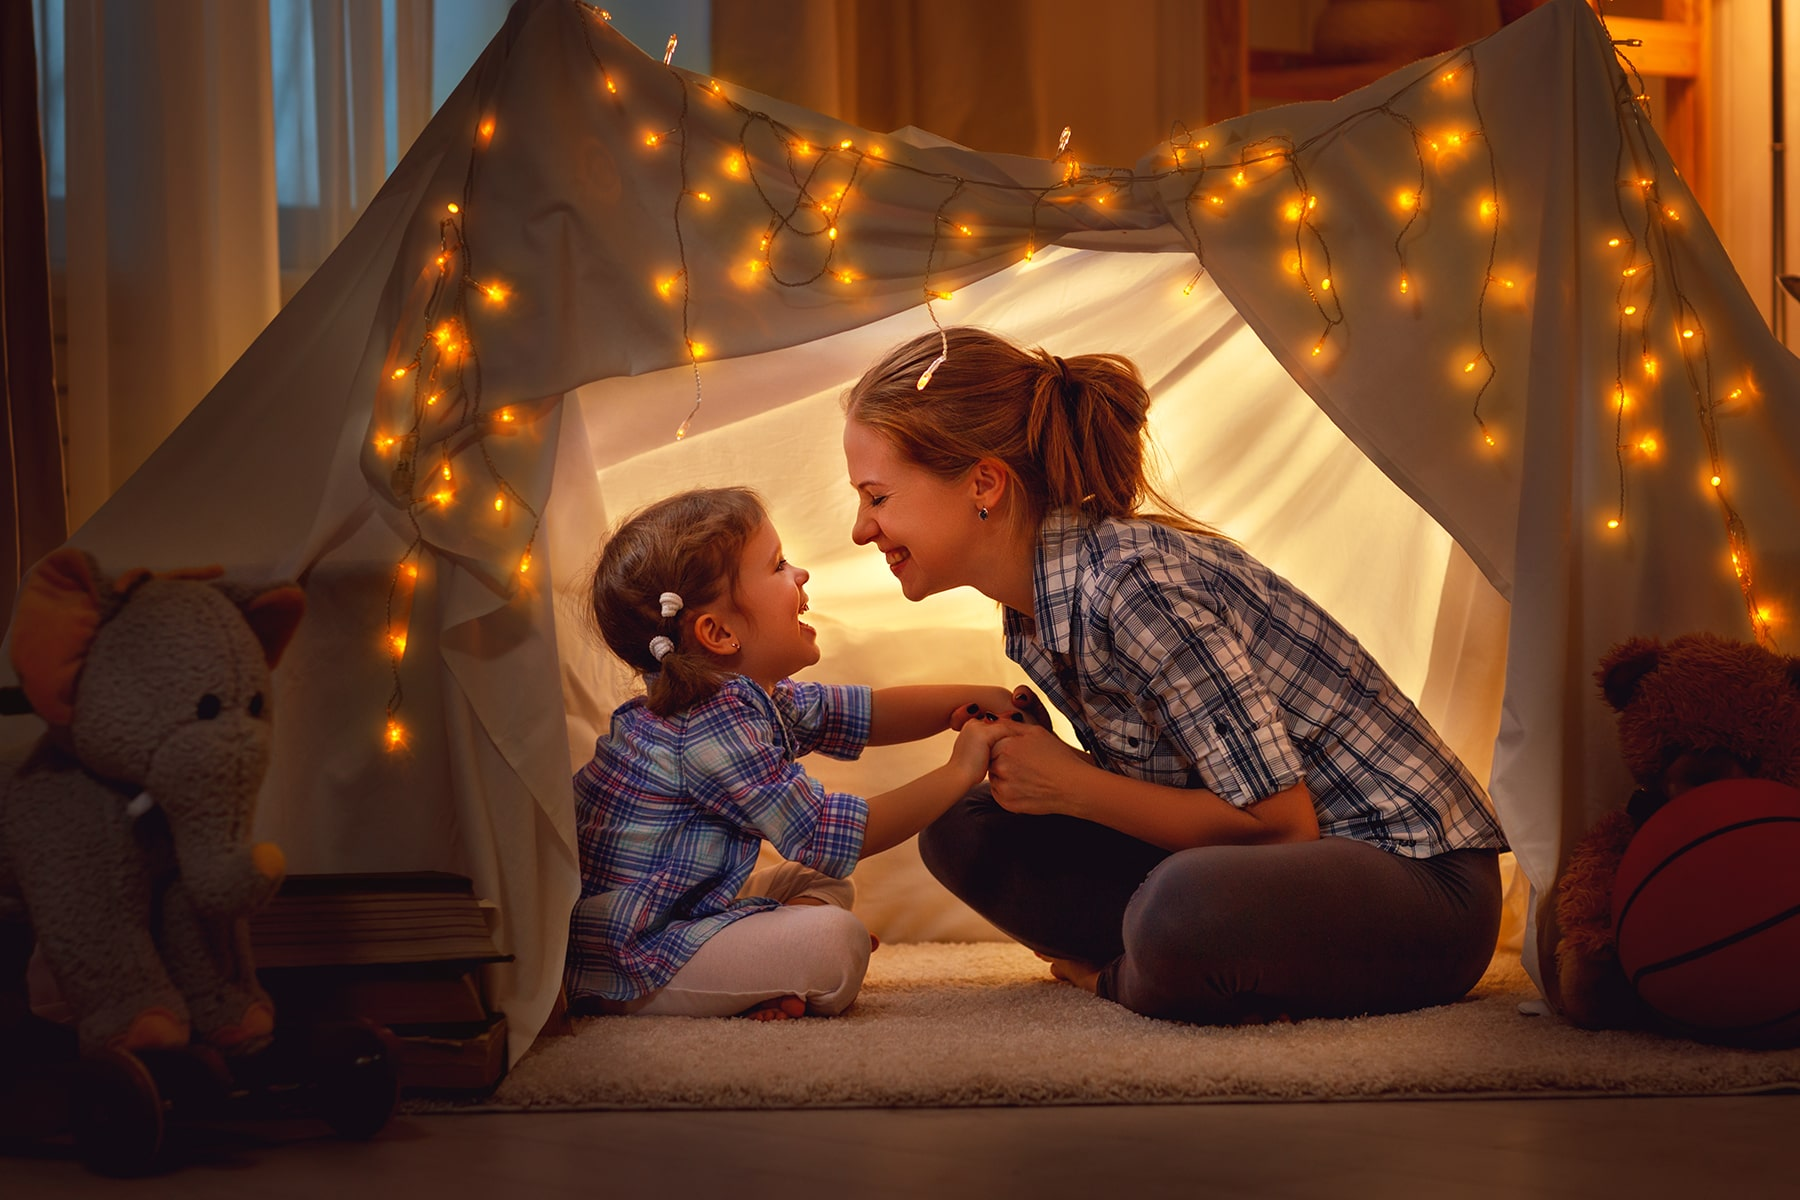 Mother and son playing inside a makeshift tent in their home.